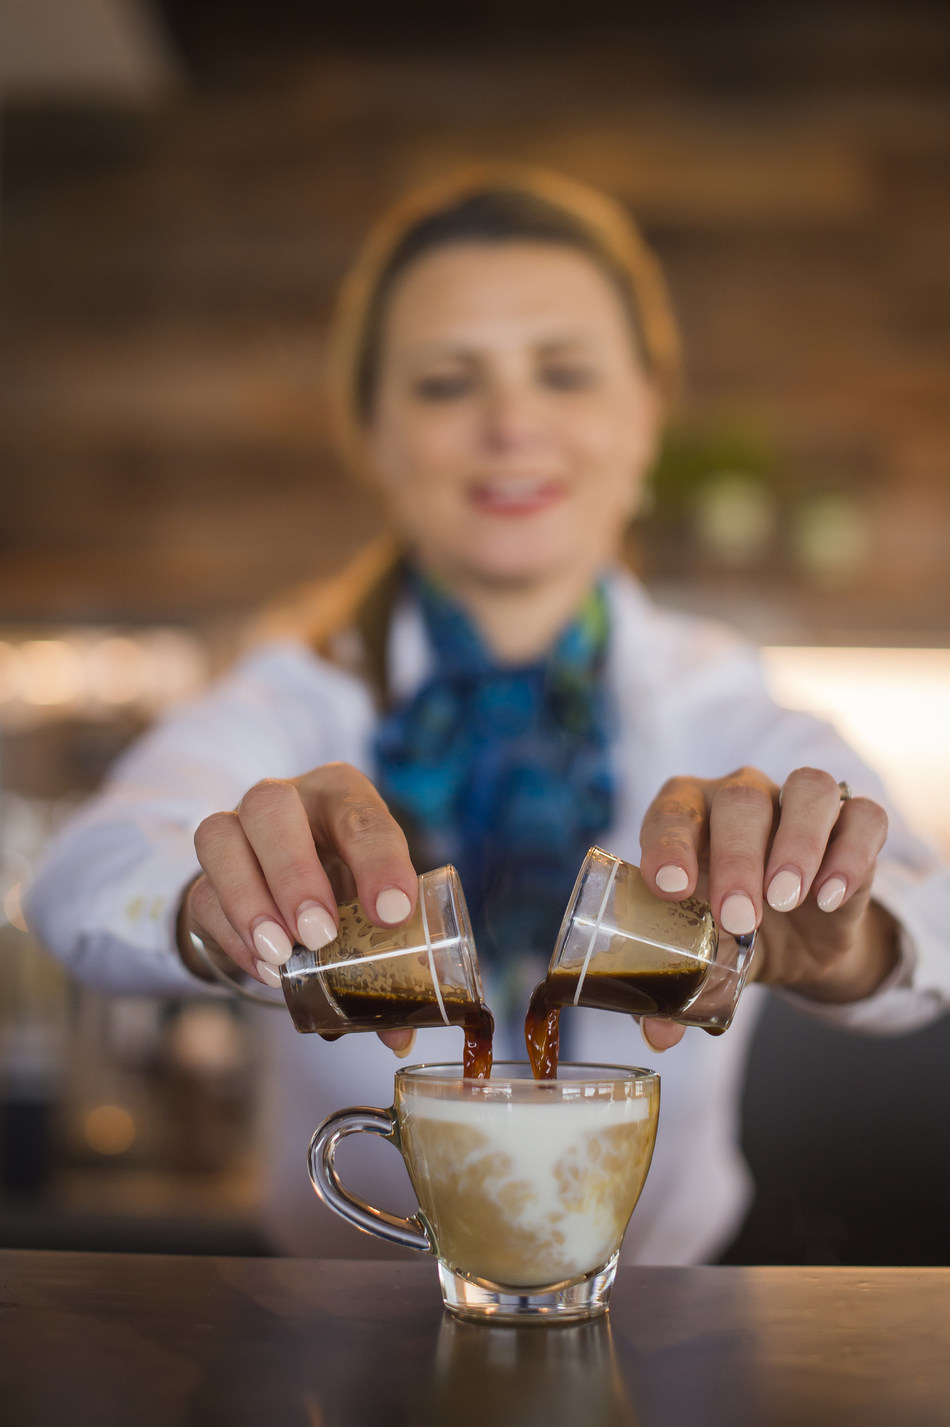 The new Alaska Lounge includes Starbucks-trained baristas who will create custom handcrafted espresso beverages and full-leaf tea beverages for guests.